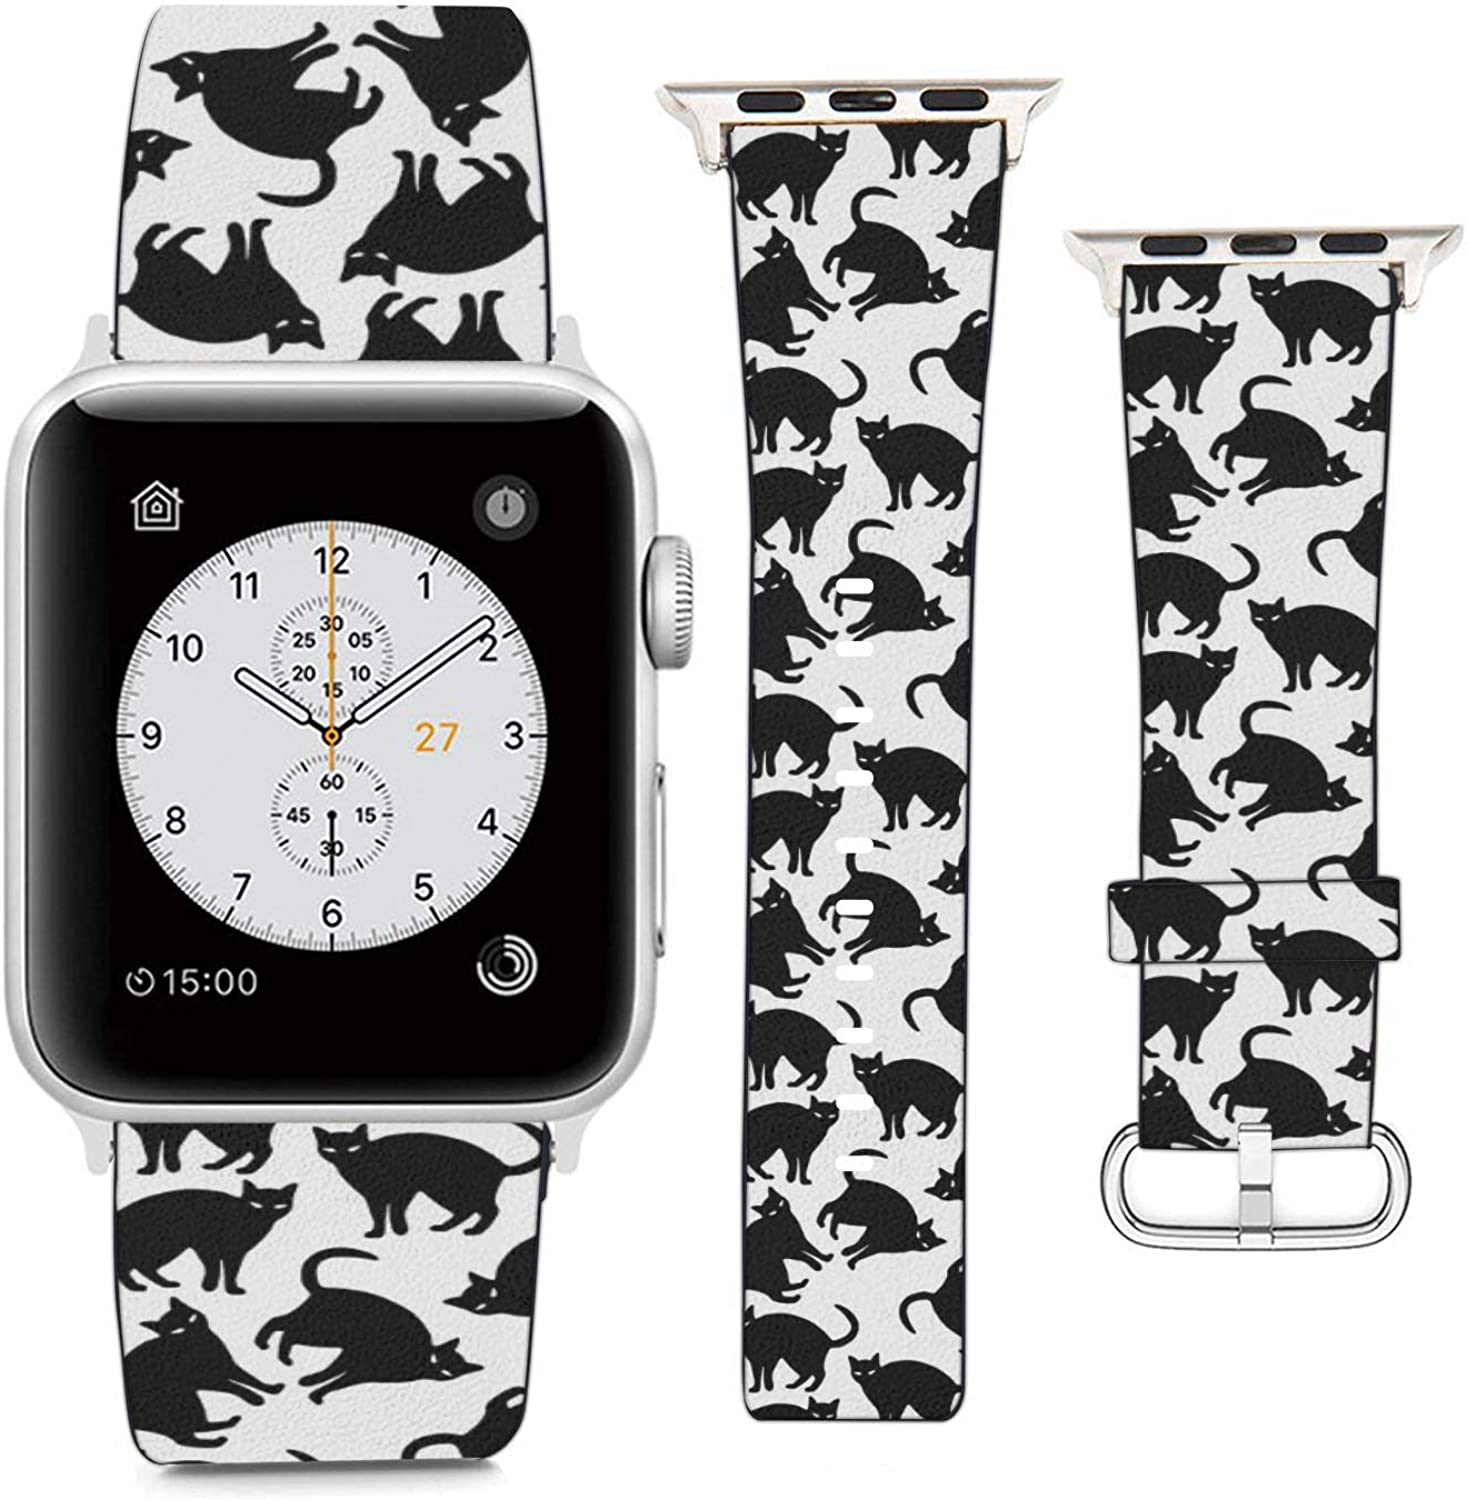 Compatible with Apple Watch Wristband 42mm 44mm, (Black Cat Pattern) PU Leather Band Replacement Strap for iWatch Series 5 4 3 2 1